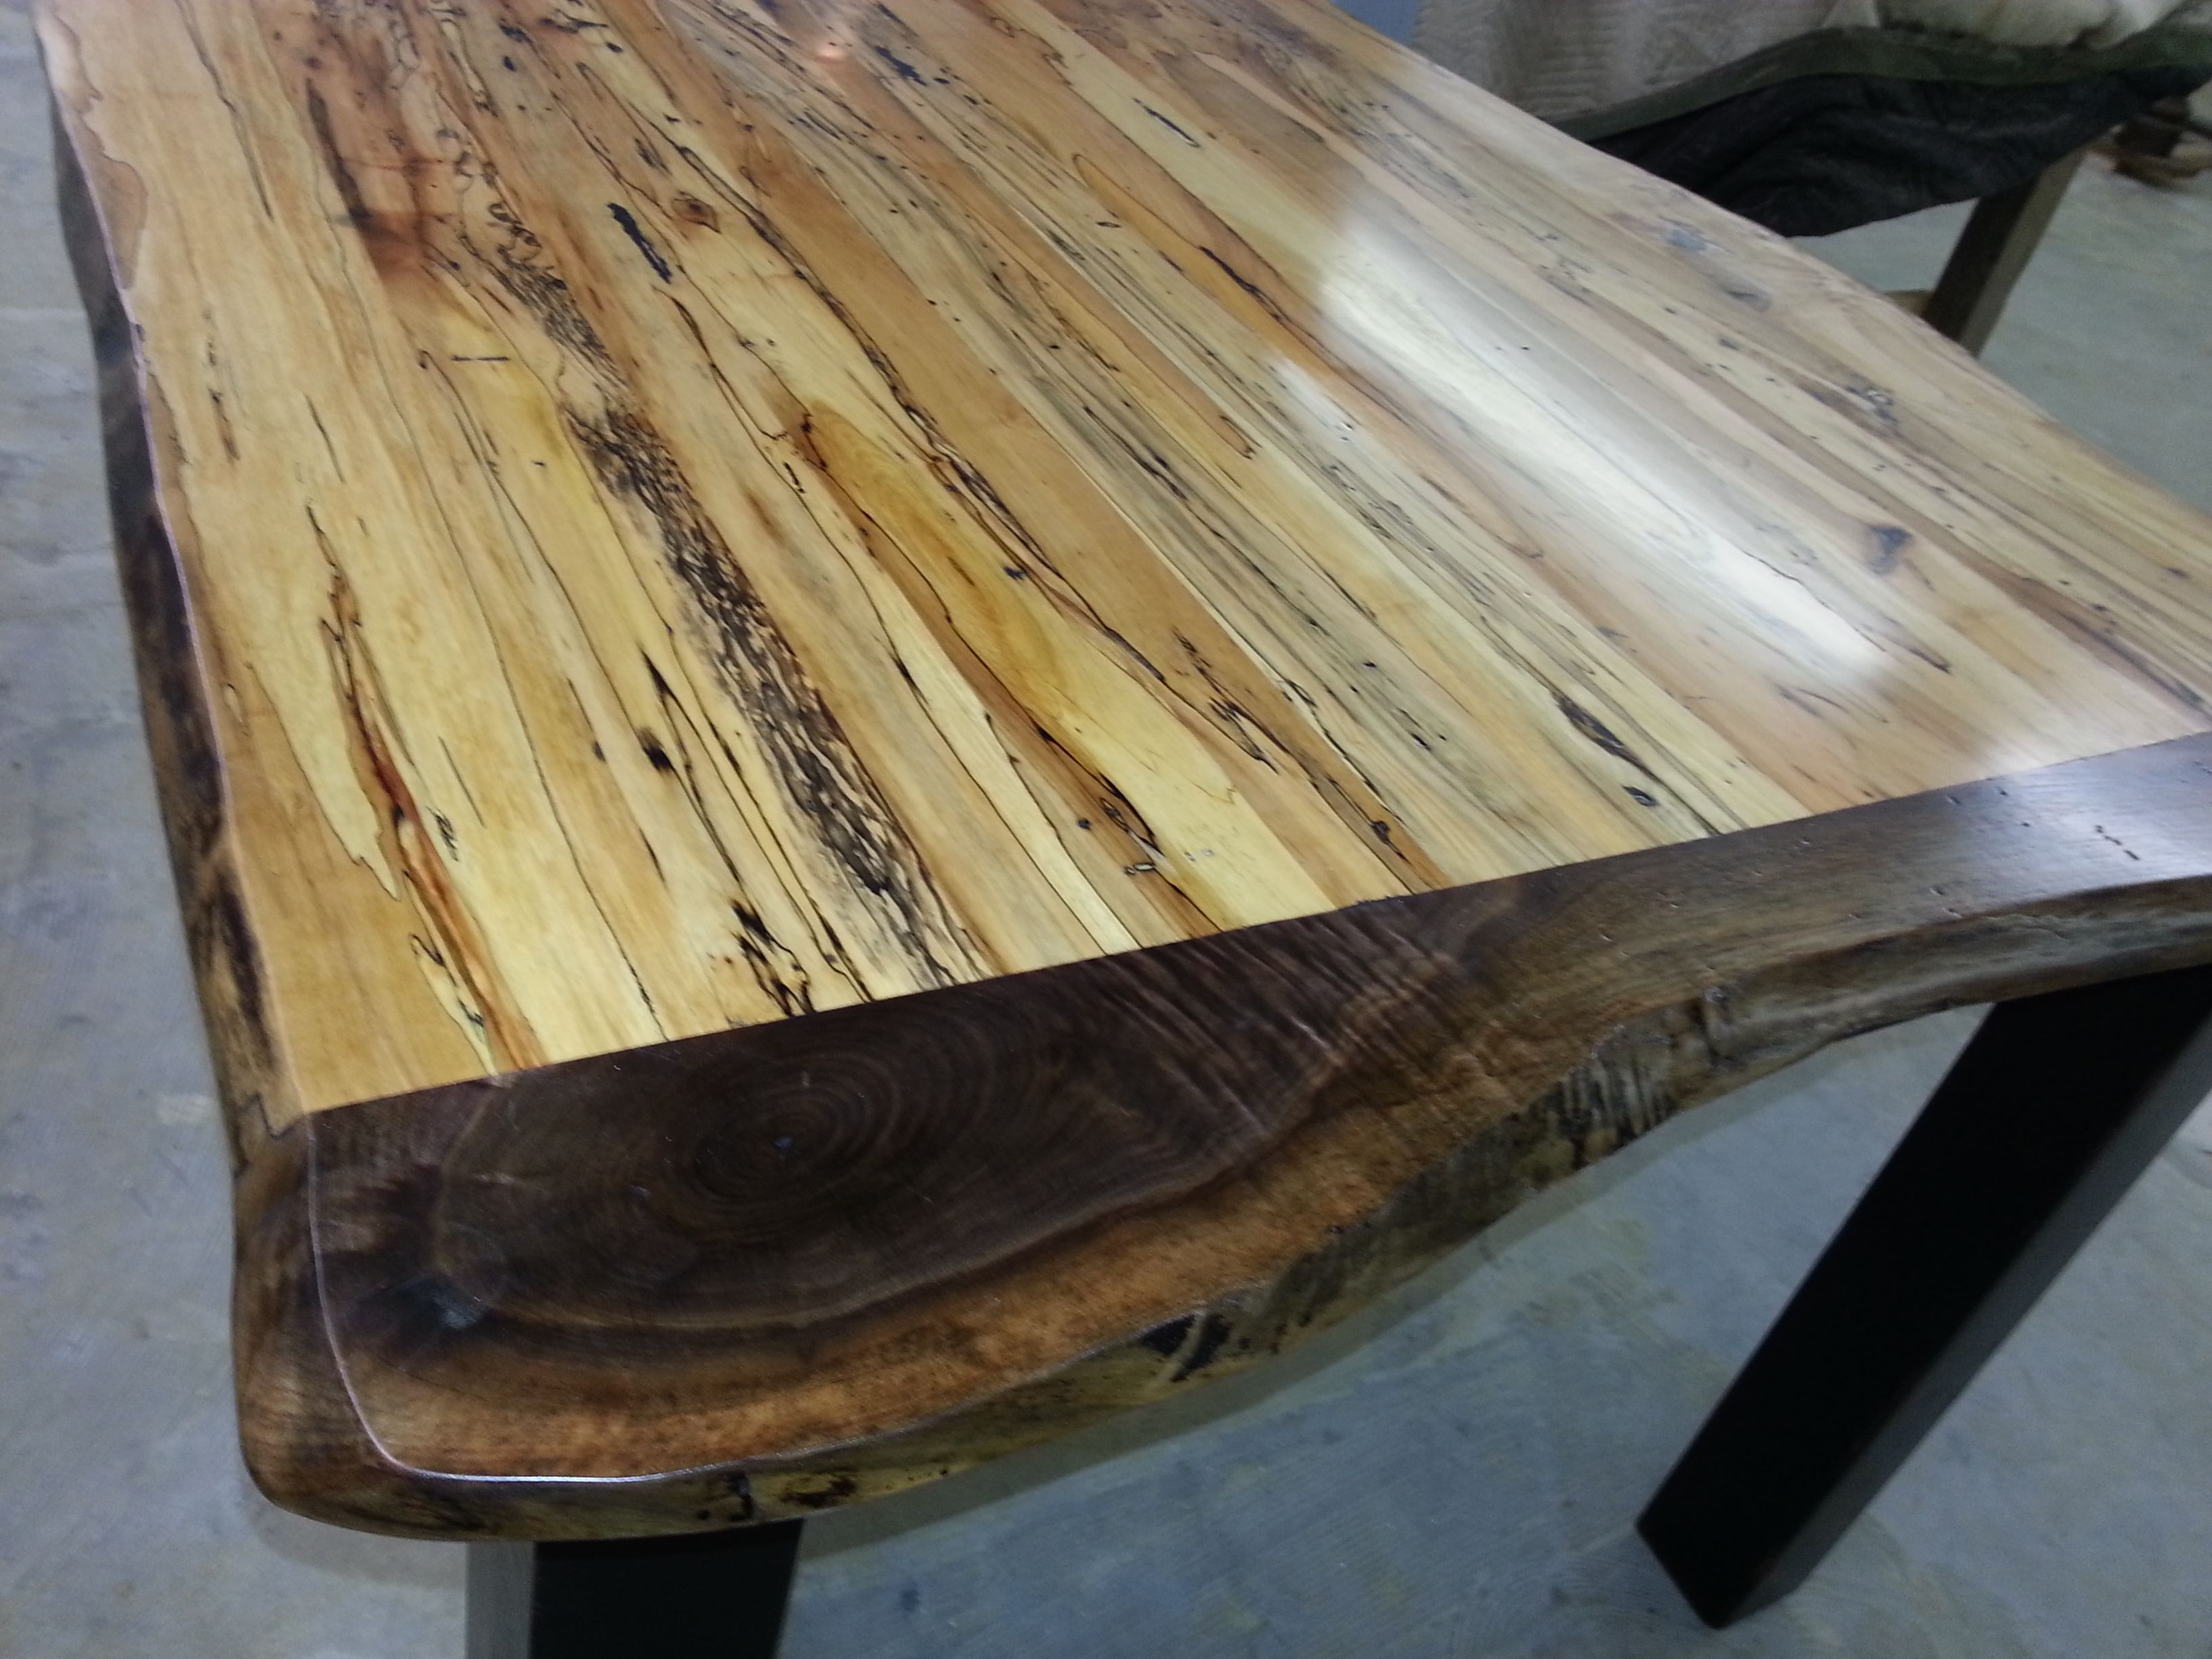 Spalted Maple Black Walnut Table Cherry Furniture Live Edge